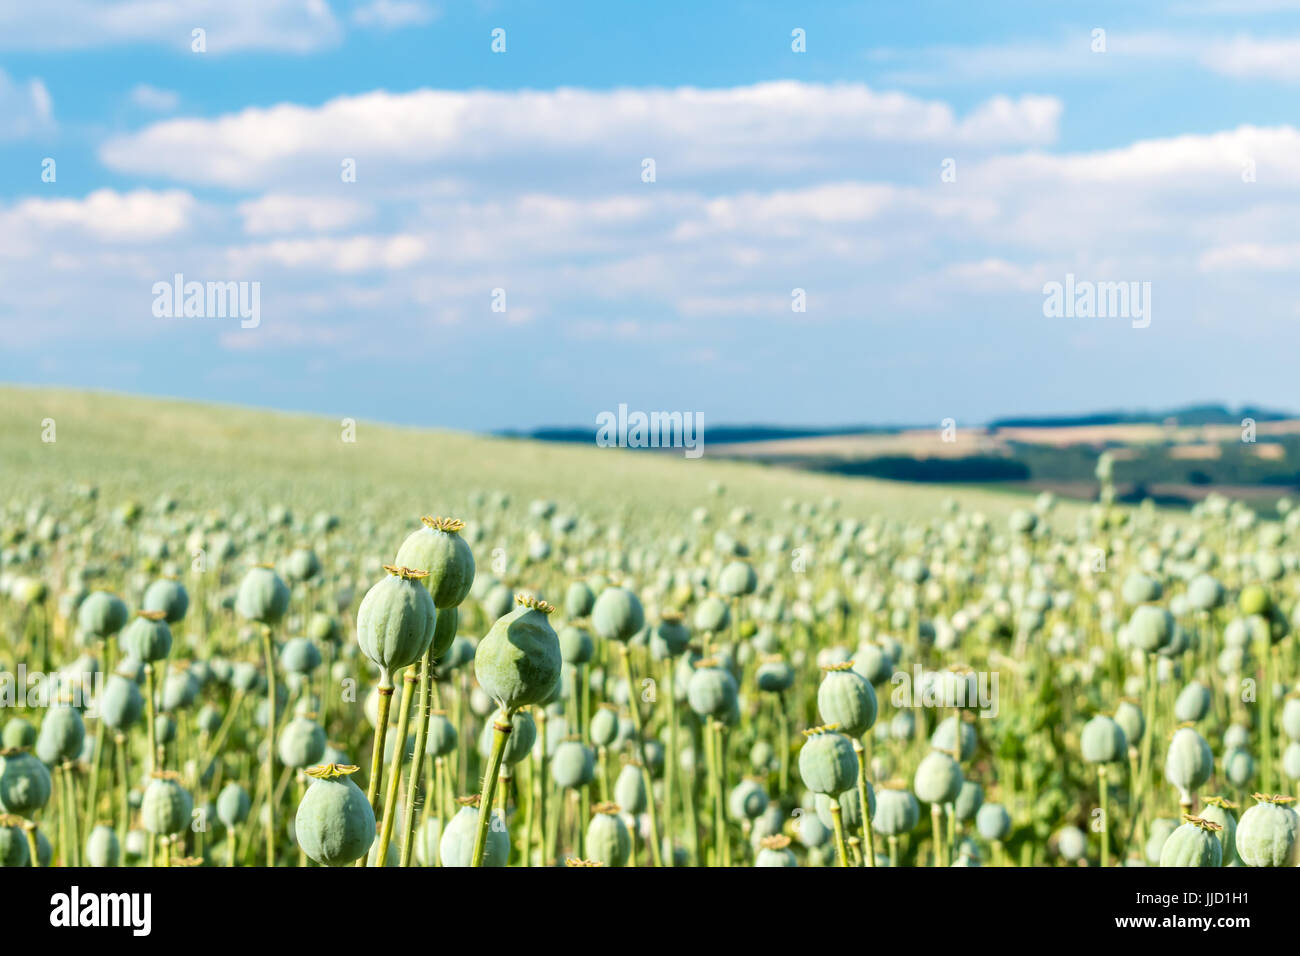 The part of big field with growing green poppies. Some poppies in foreground are focused. In the smooth blurry background Stock Photo